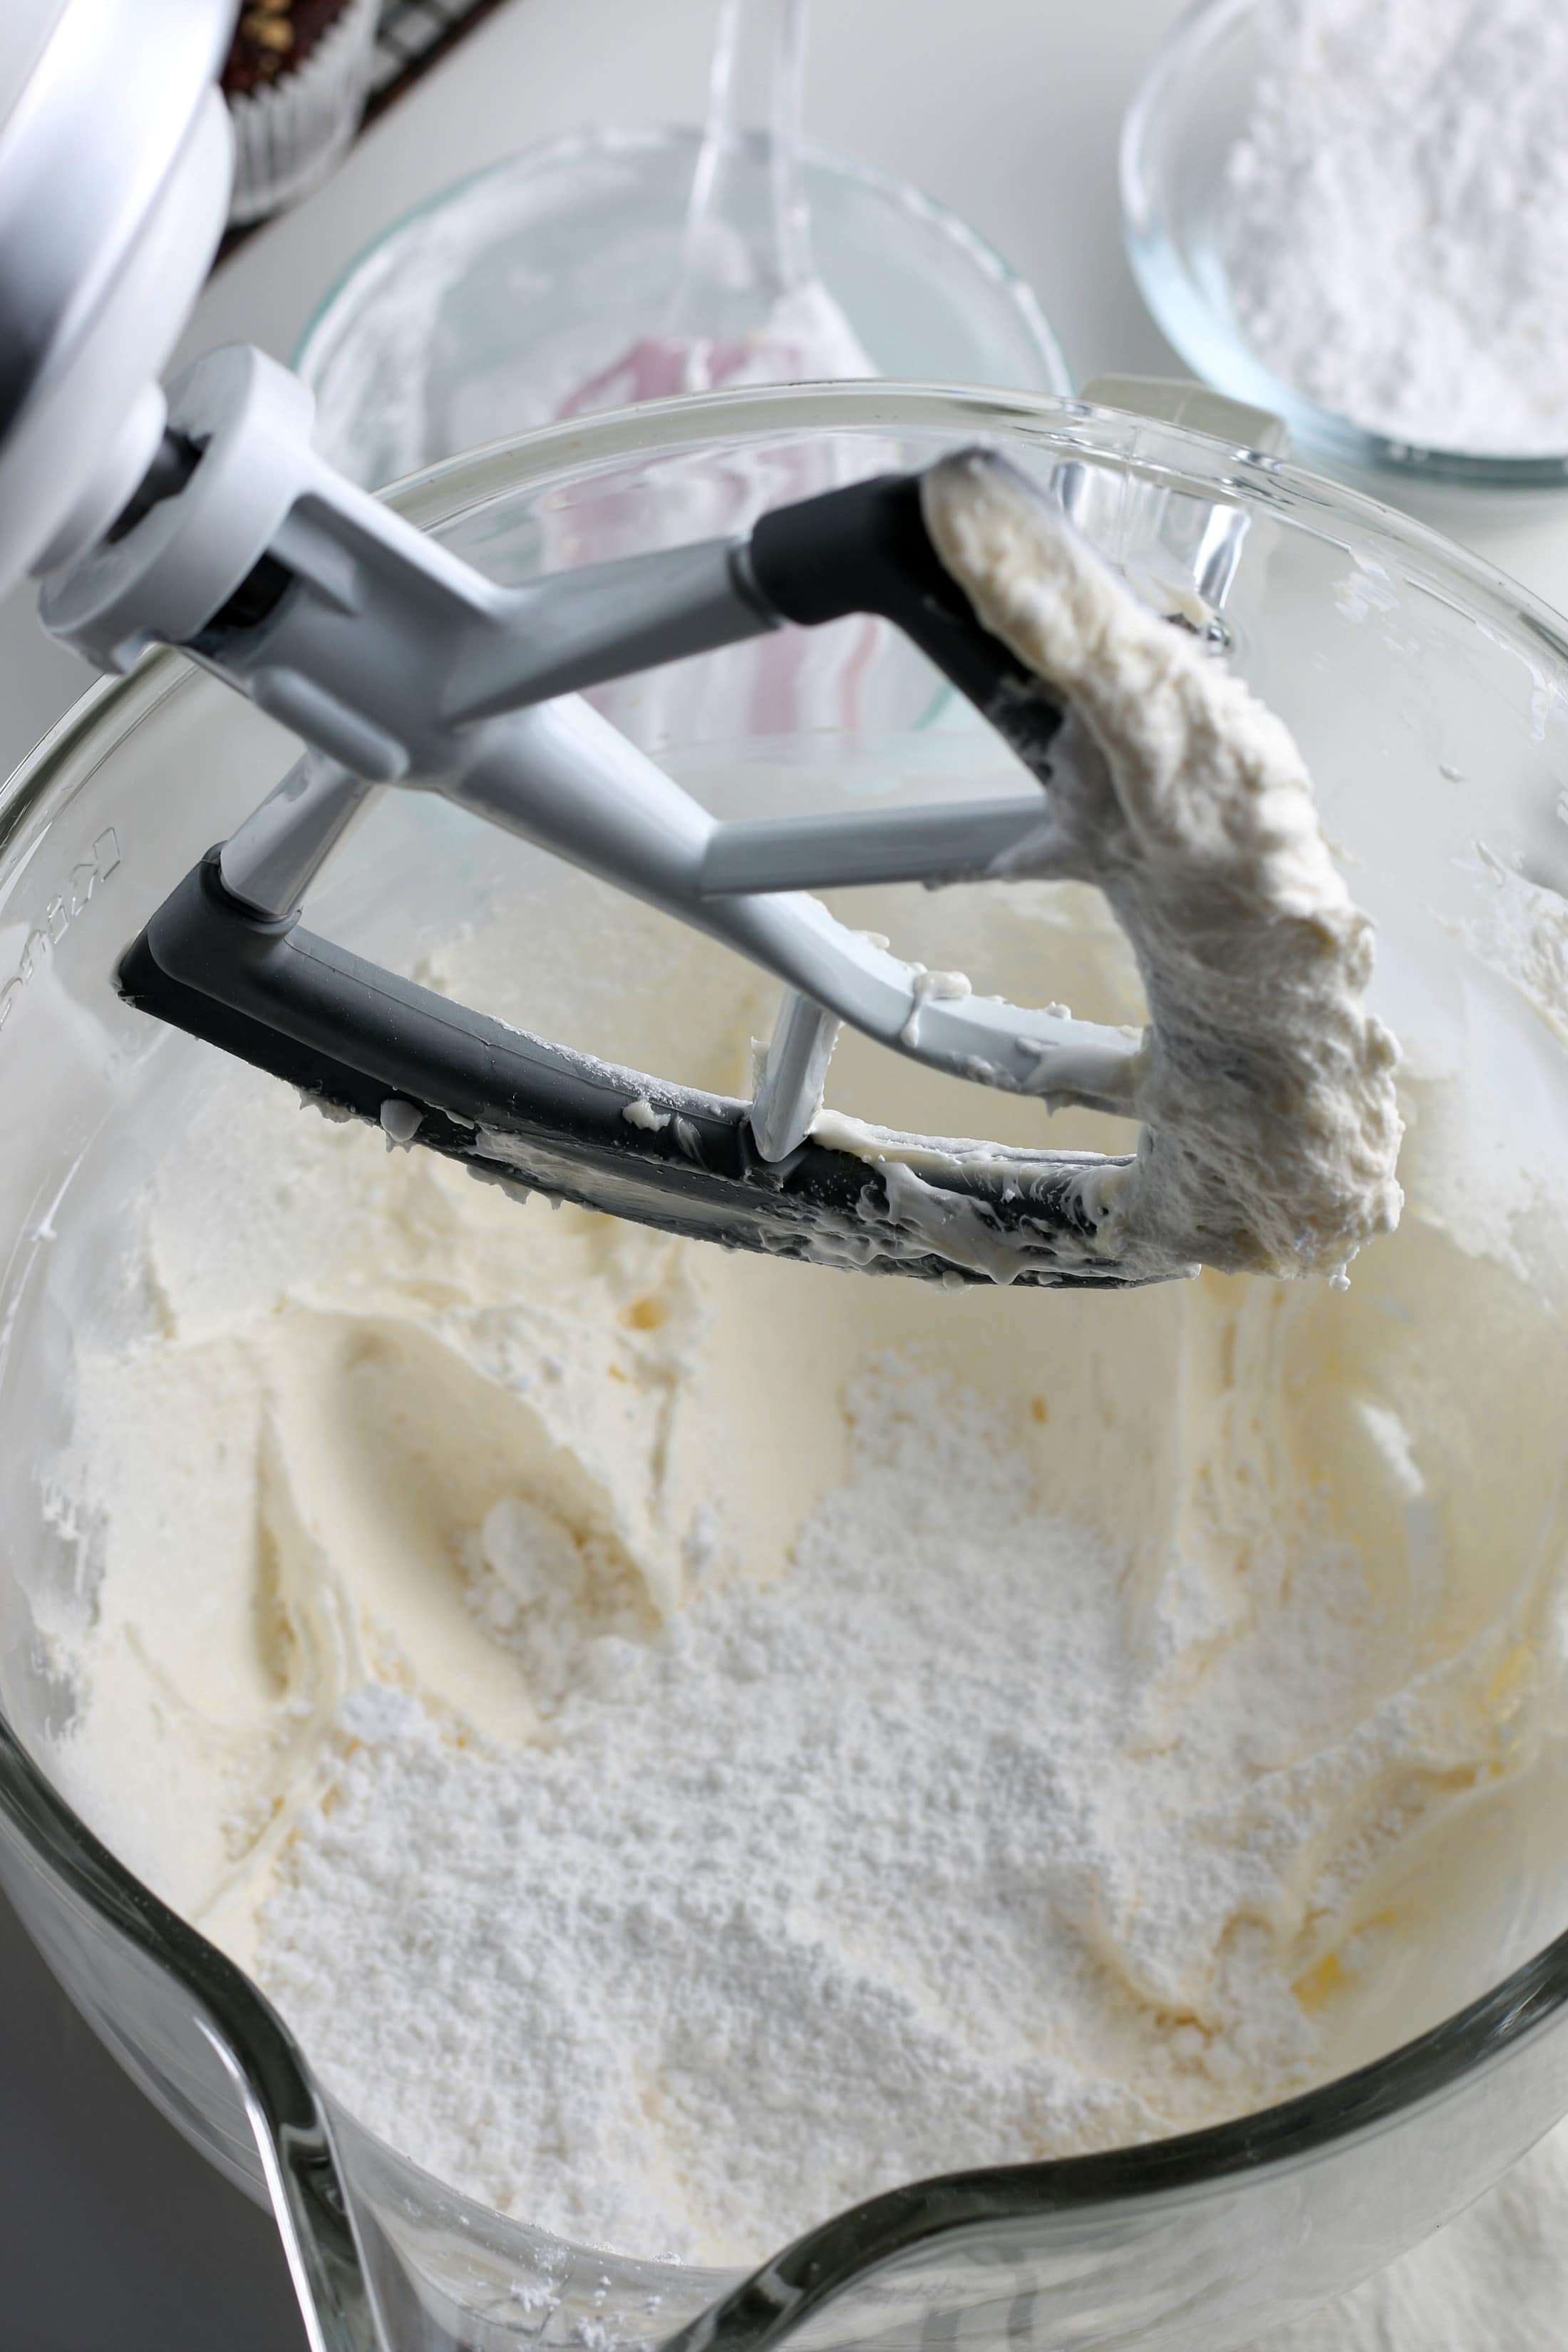 powdered sugar with marshmallow cream combination in a glass mixing bowl